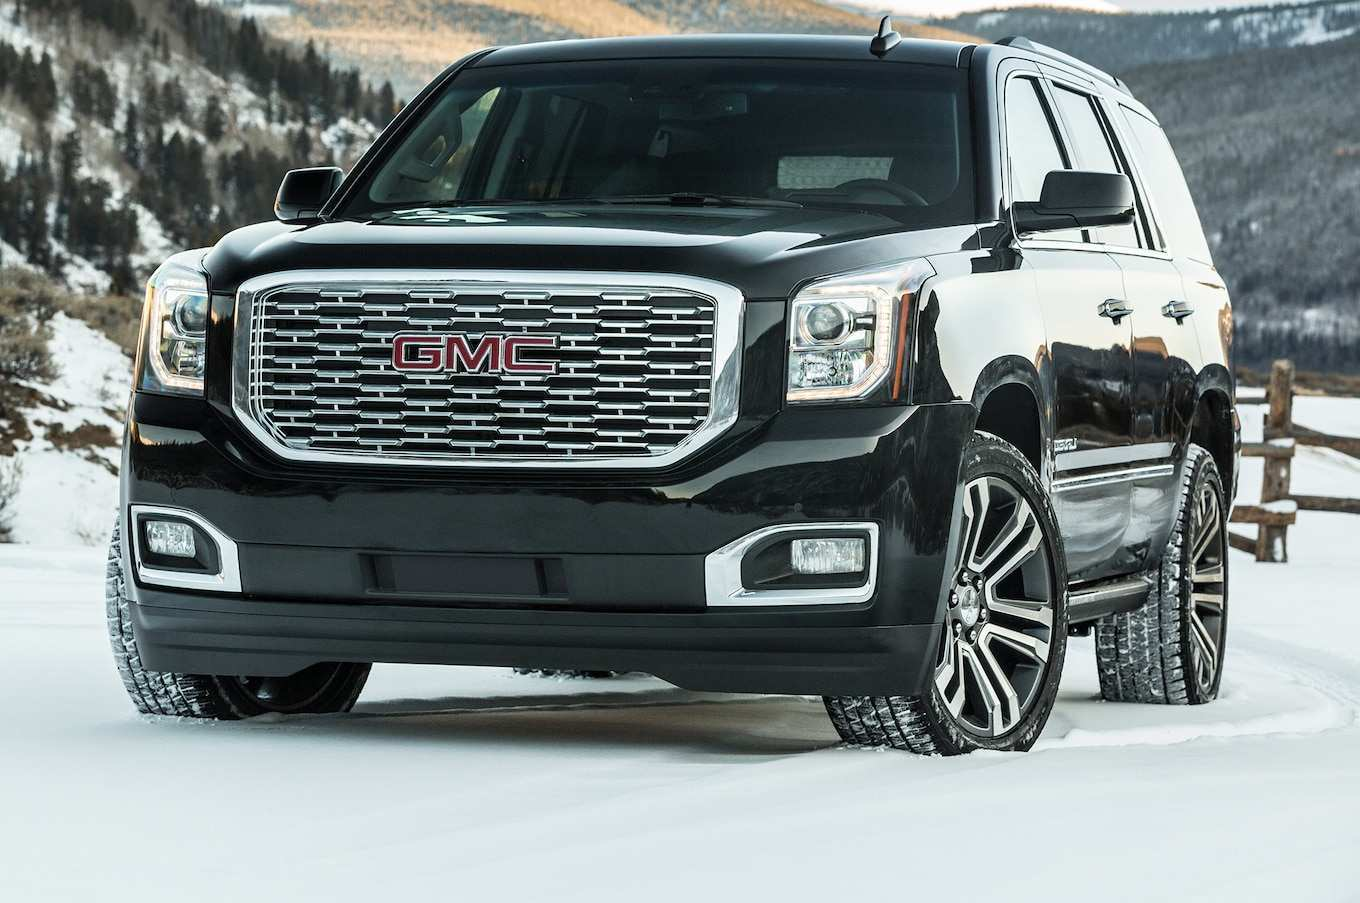 49 New The Gmc Yukon Diesel 2019 Redesign Spy Shoot with The Gmc Yukon Diesel 2019 Redesign